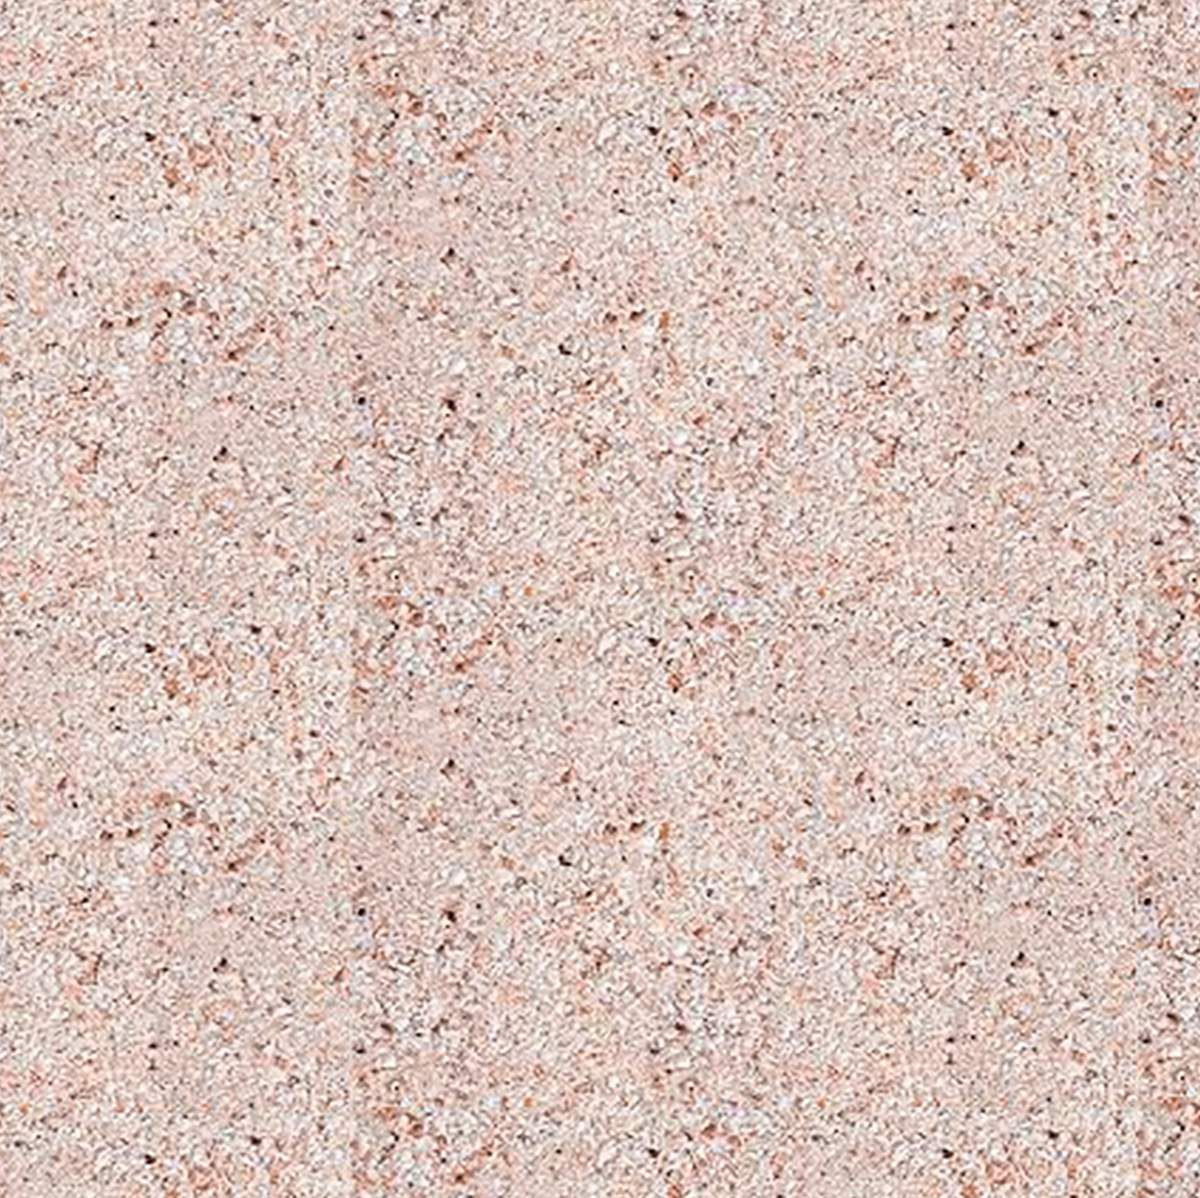 Substrato Ocean Tech Coral Sand - 8kg 1mm